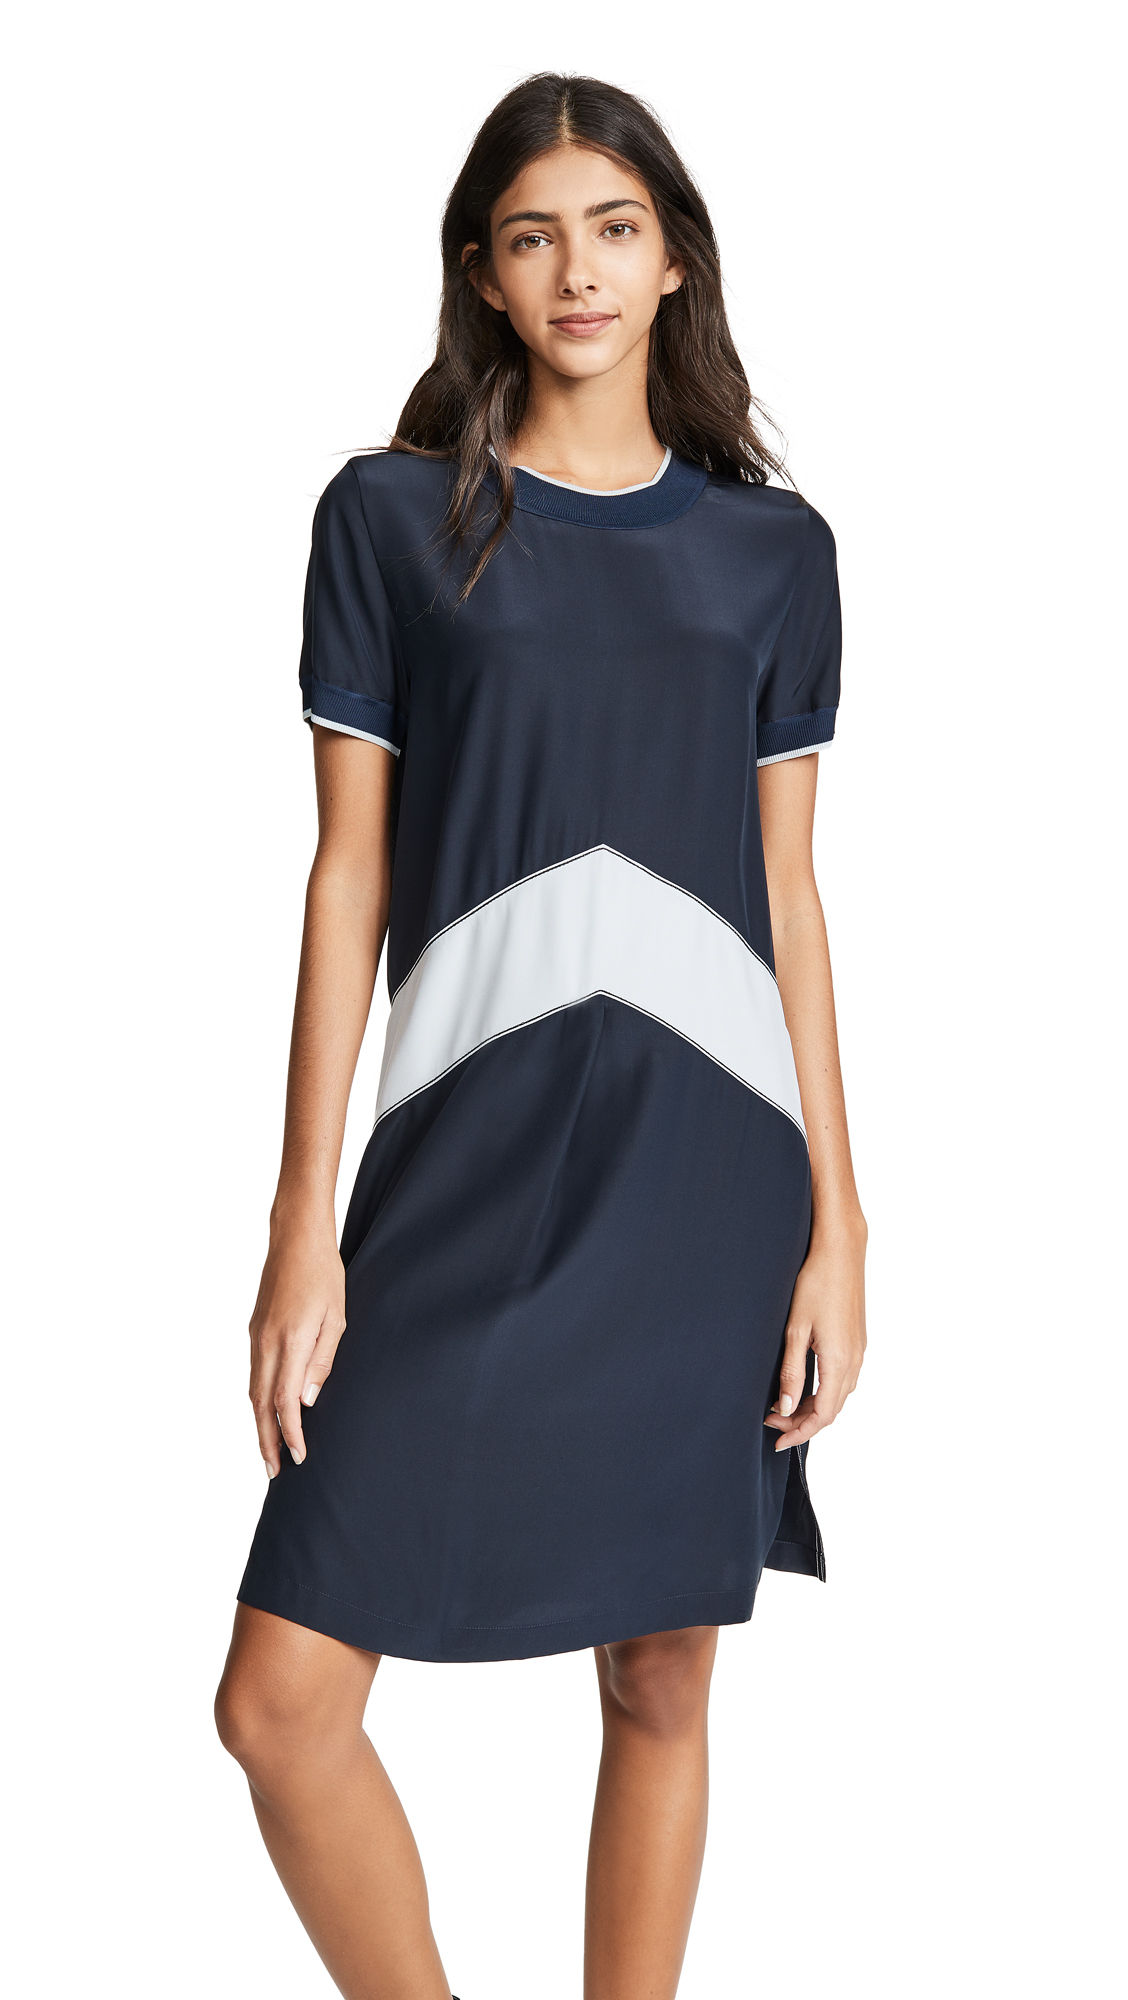 Rag & Bone Hannah Dress - Salute